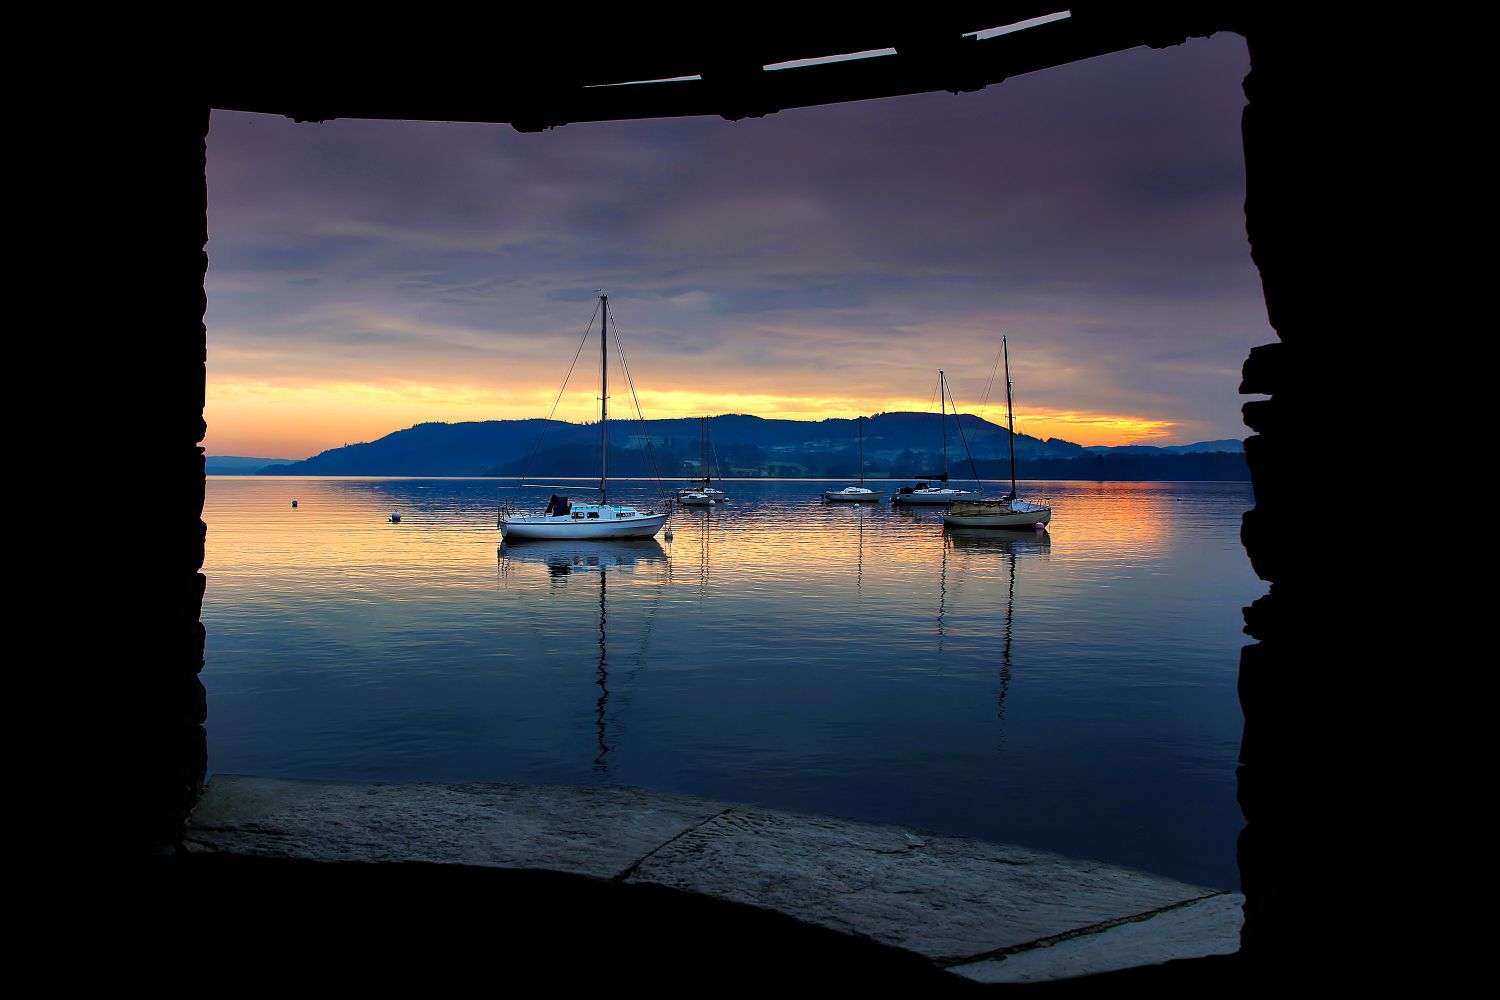 A Windermere sunset through the square window